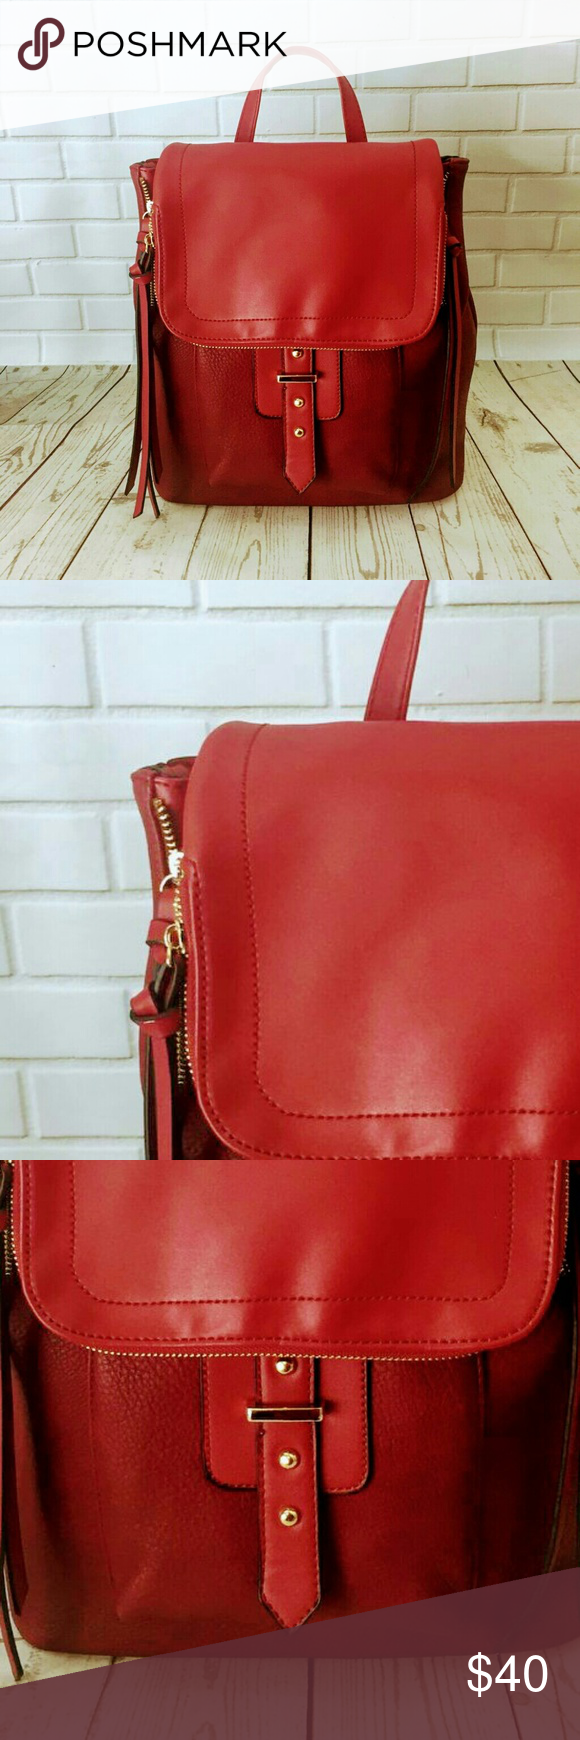 Nwt Isabelle Vegan Leather Backpack Red With Adjule Straps Bags Backpacks